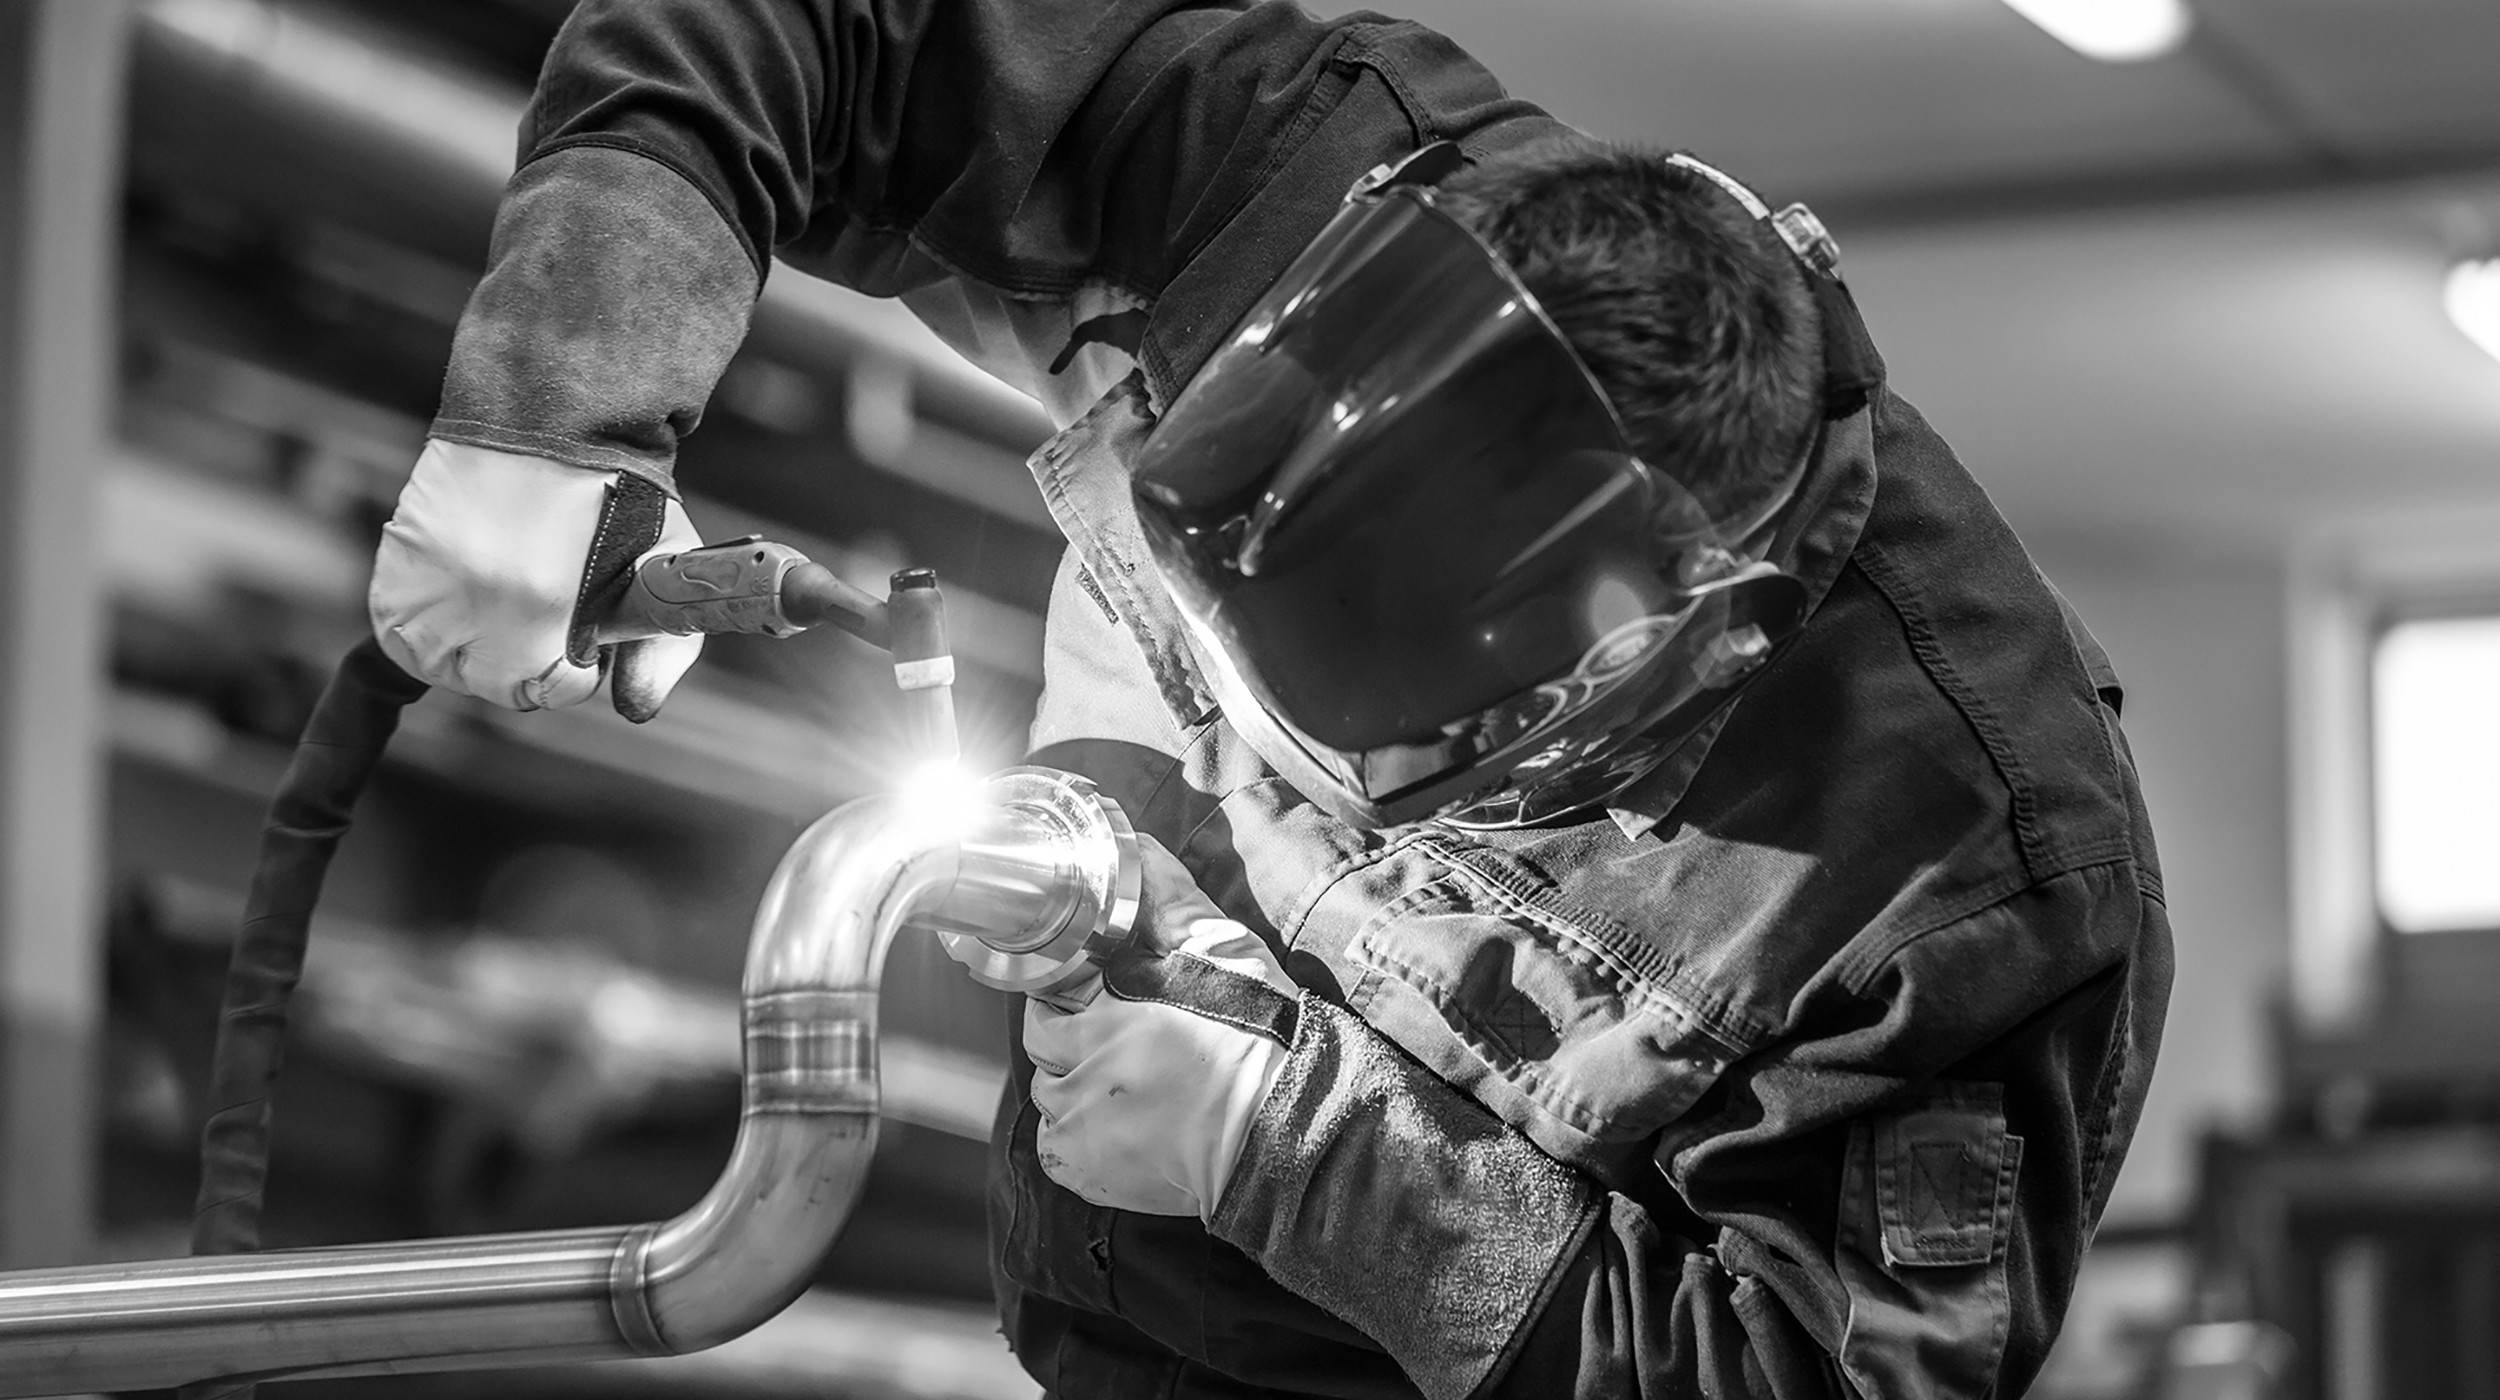 OUR WELDING ASSISTANCE RANGE